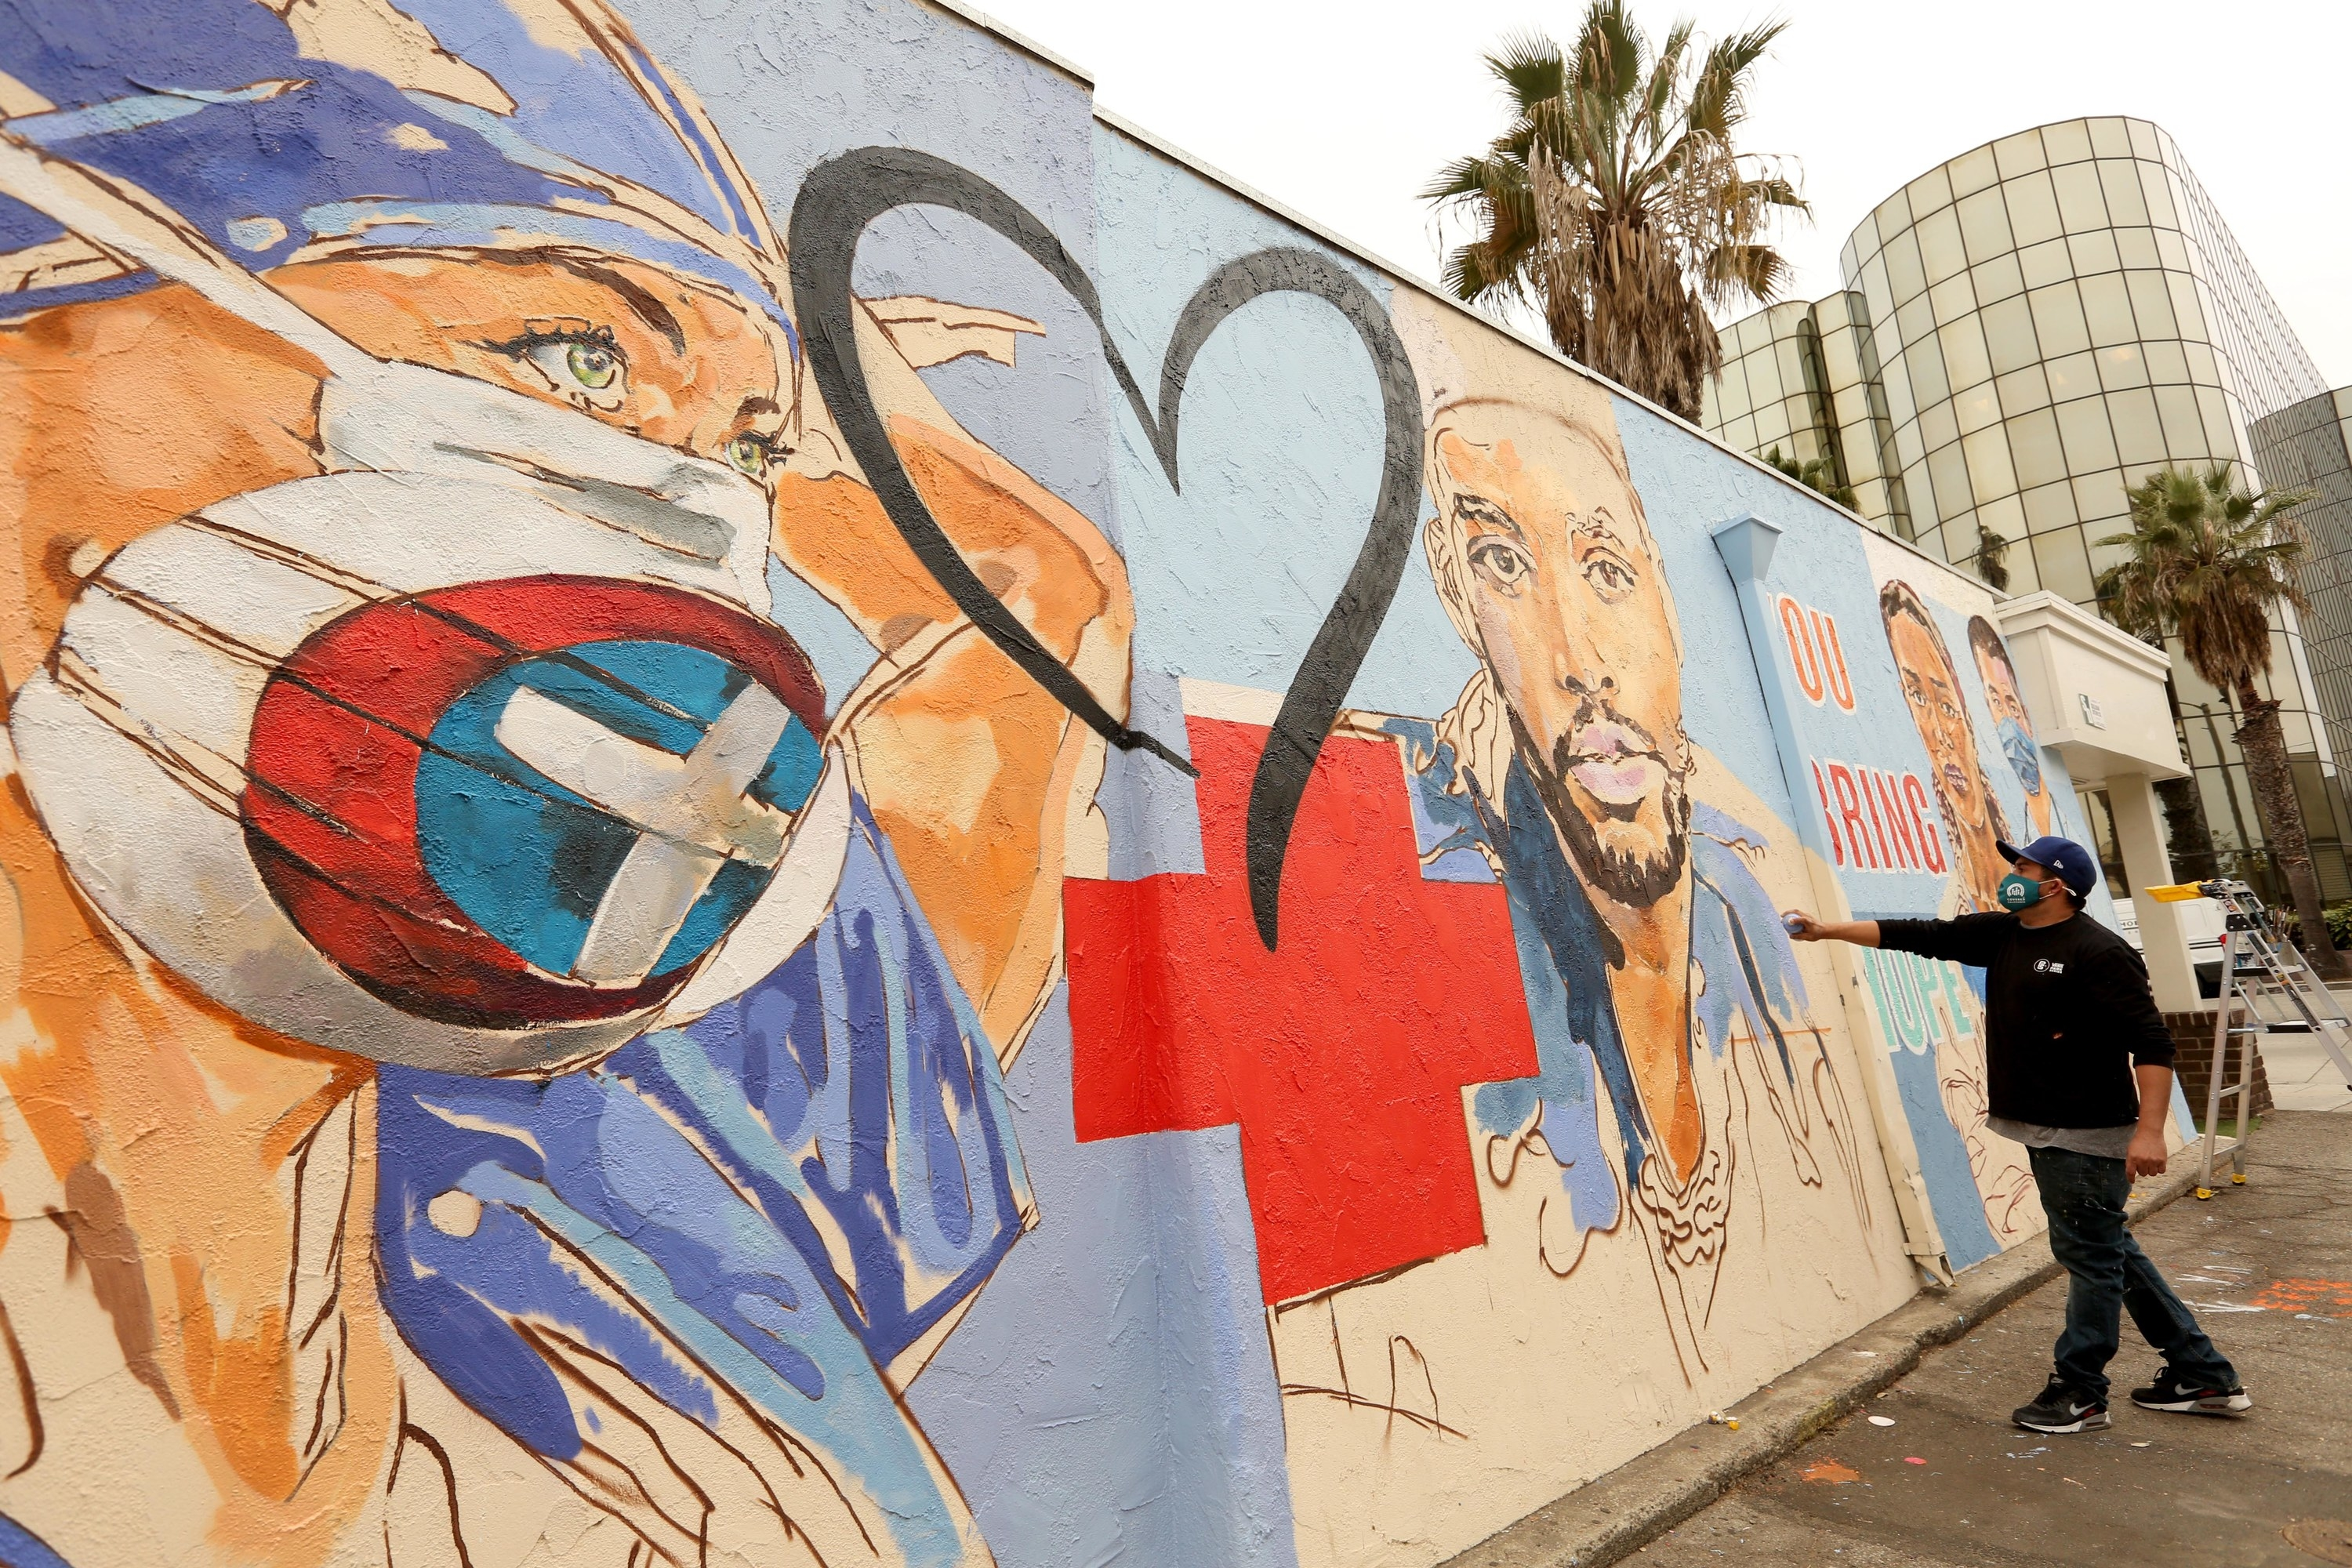 A street mural shows a red cross and heart between illustrations of healthcare workers